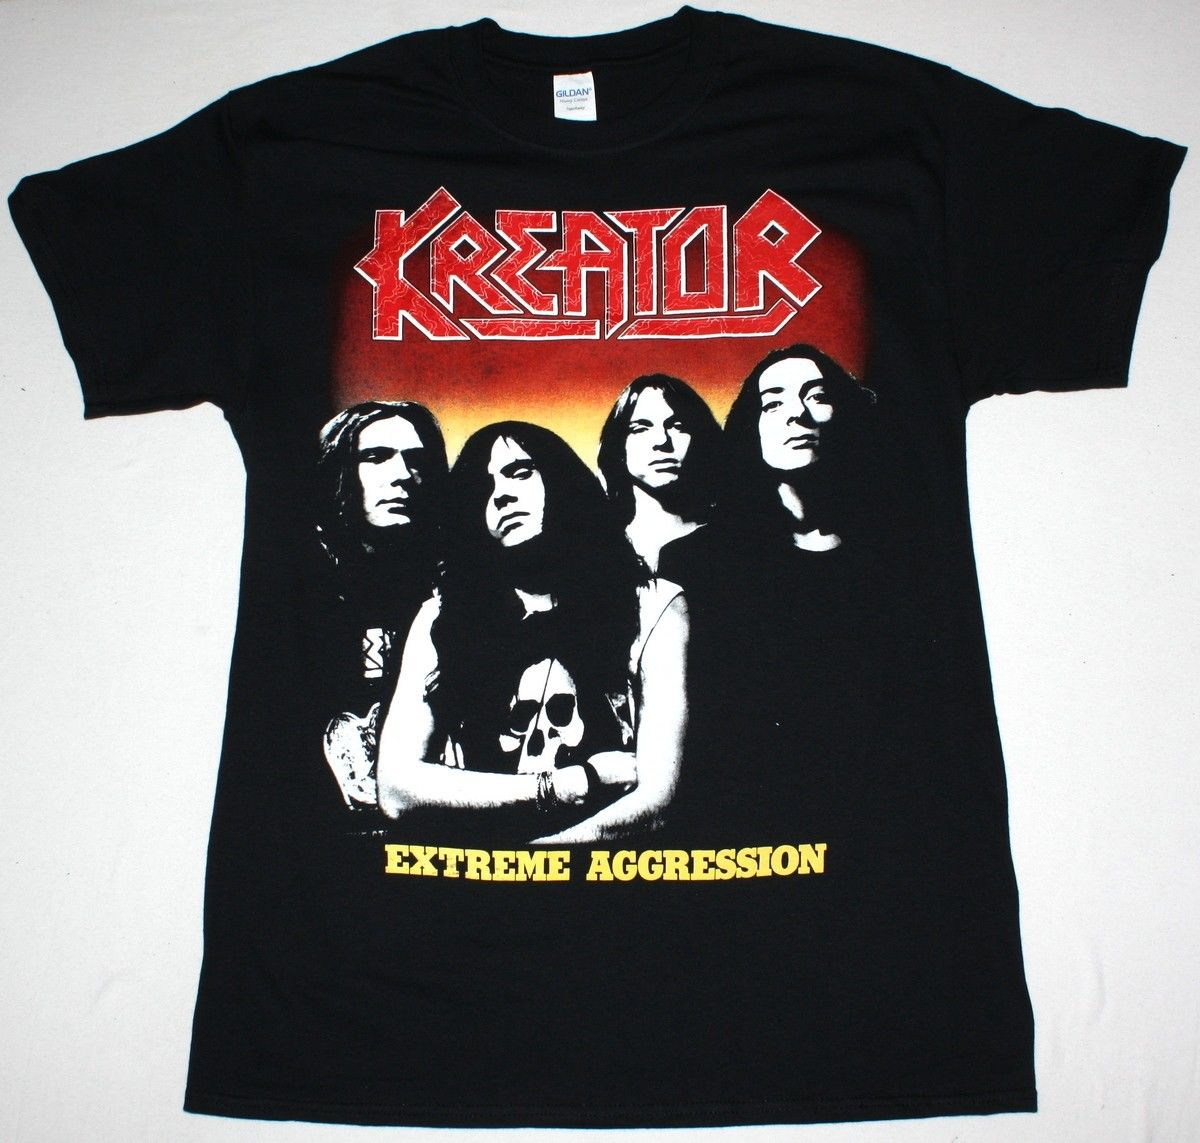 KREATOR EXTREME AGGRESSION THRASH METAL DESTRUCTION TANKARD NEW BLACK T-SHIRT Normal Short Sleeve Cotton T Shirts